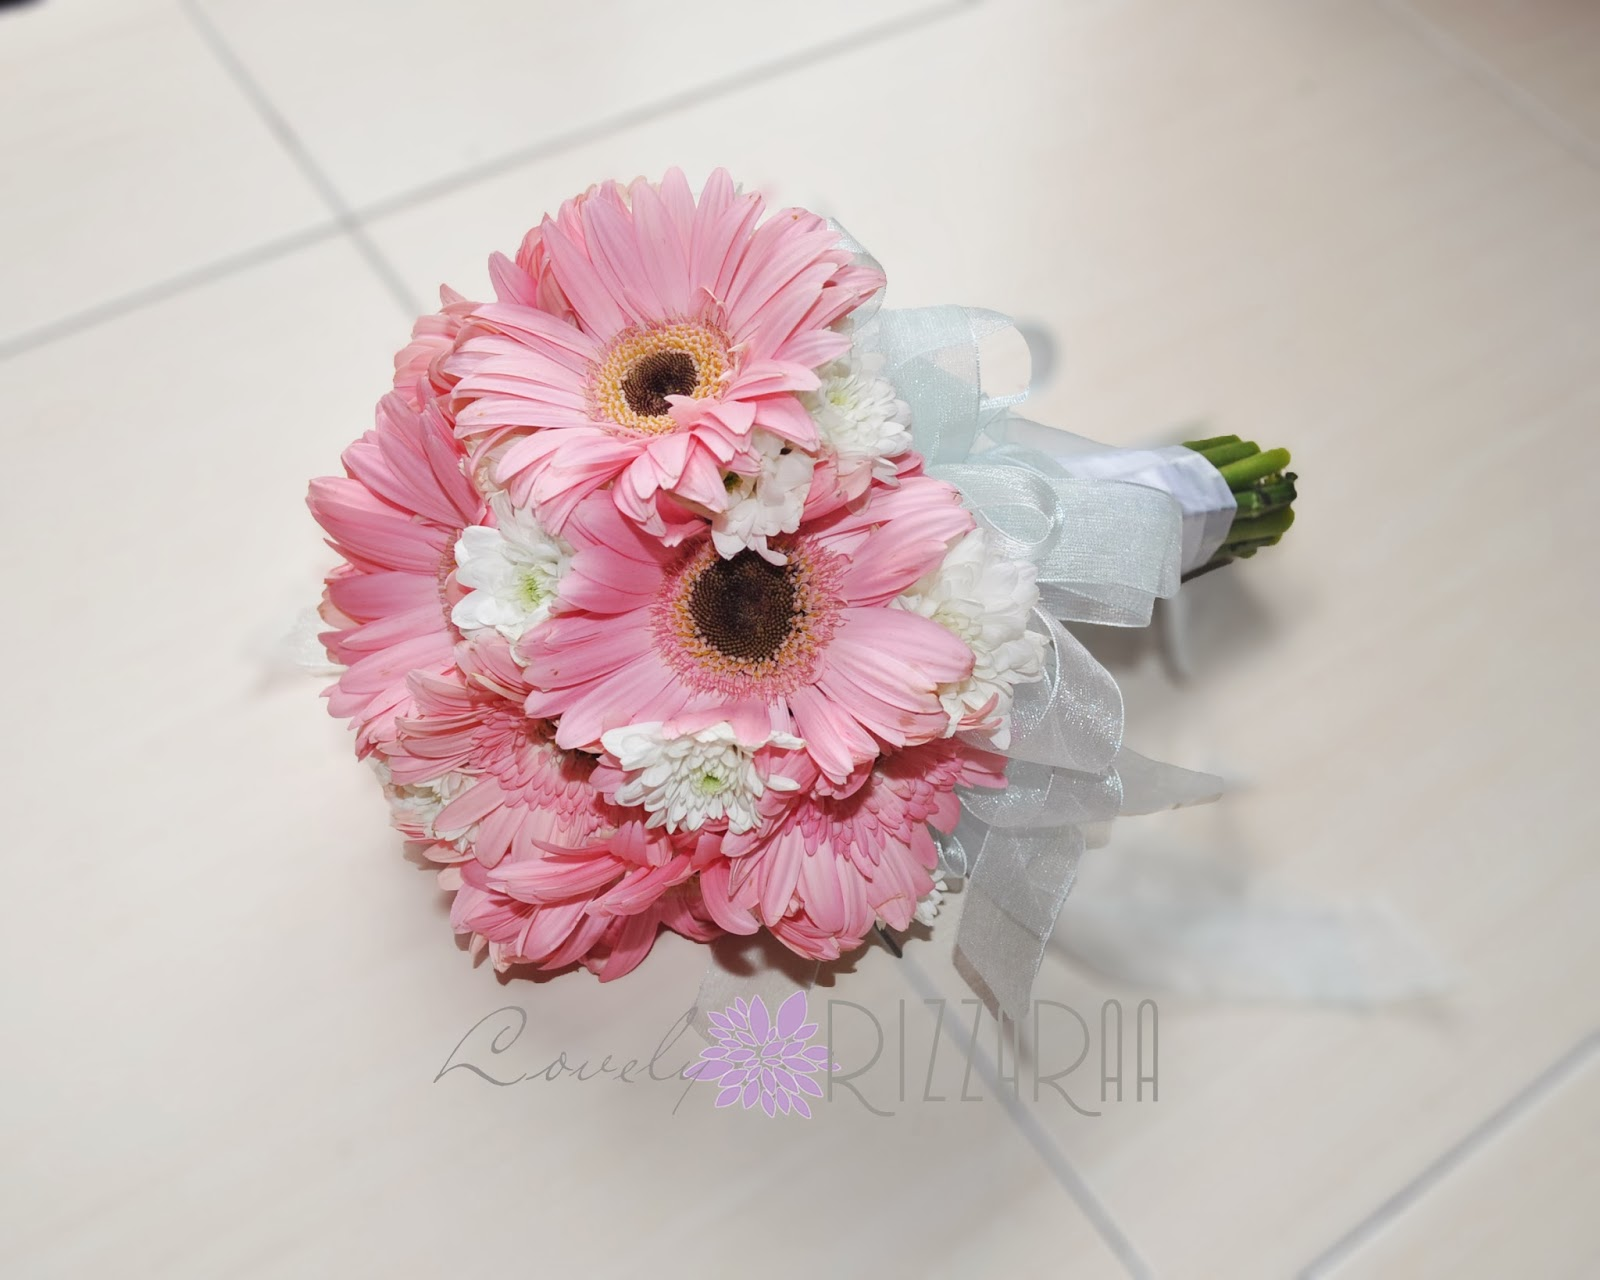 Fresh flower hand bouquet rose hand bouquet best ranunculus a cute hand bouquet for fazus engagement made from fresh flowers gerberas in coral and a izmirmasajfo